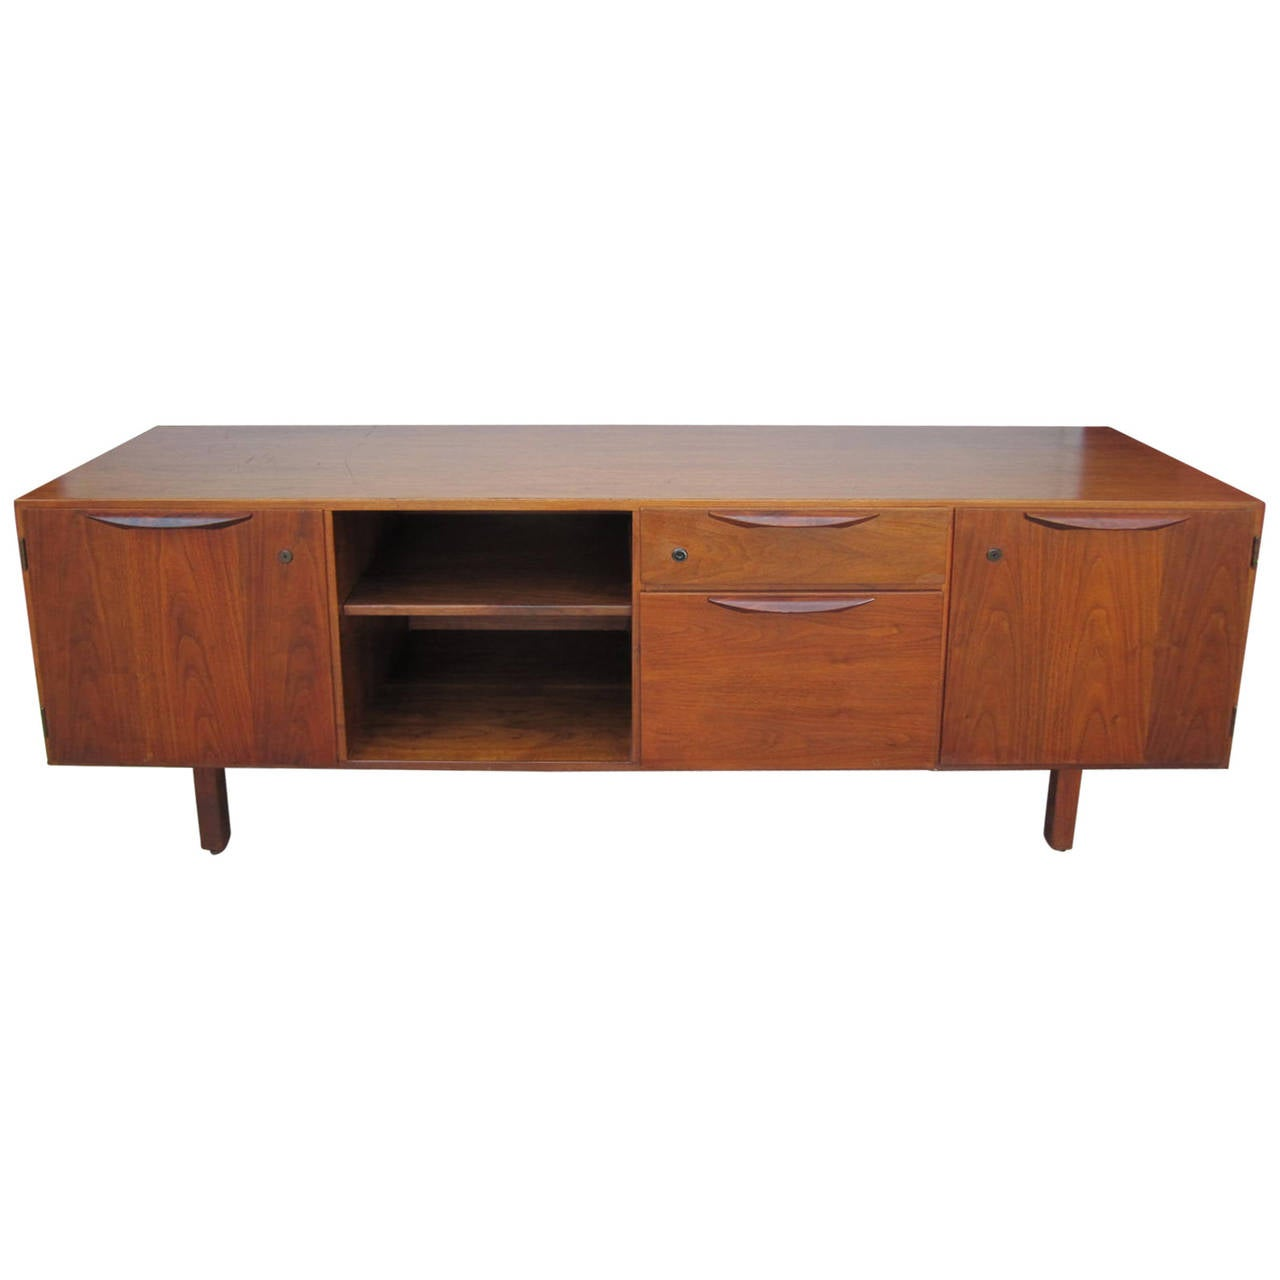 Jens Risom Walnut Credenza Cabinet Mid Century Modern For